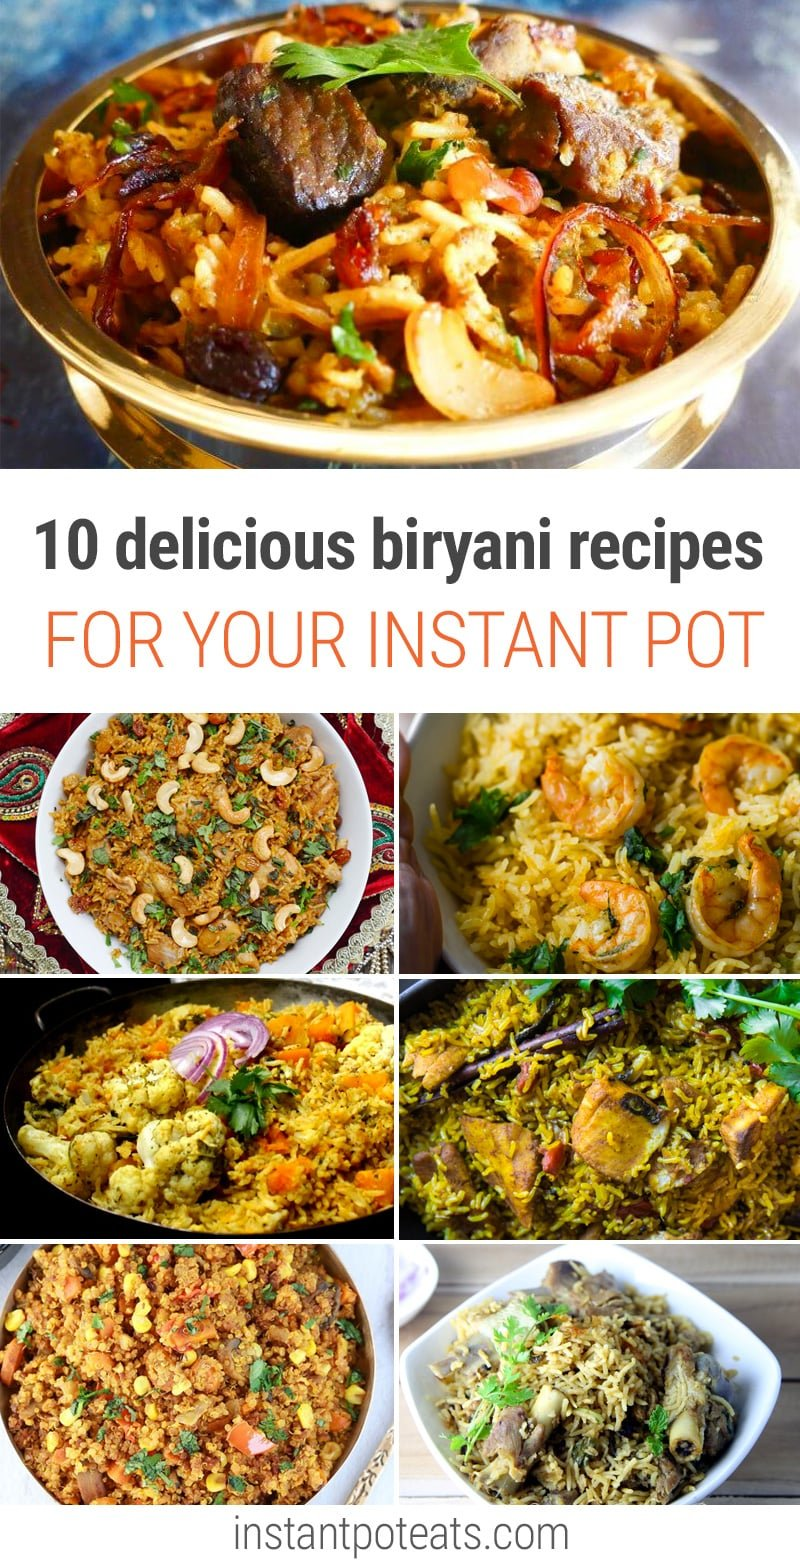 10 Delicious Instant Pot Biryani Recipes To Try Tonight